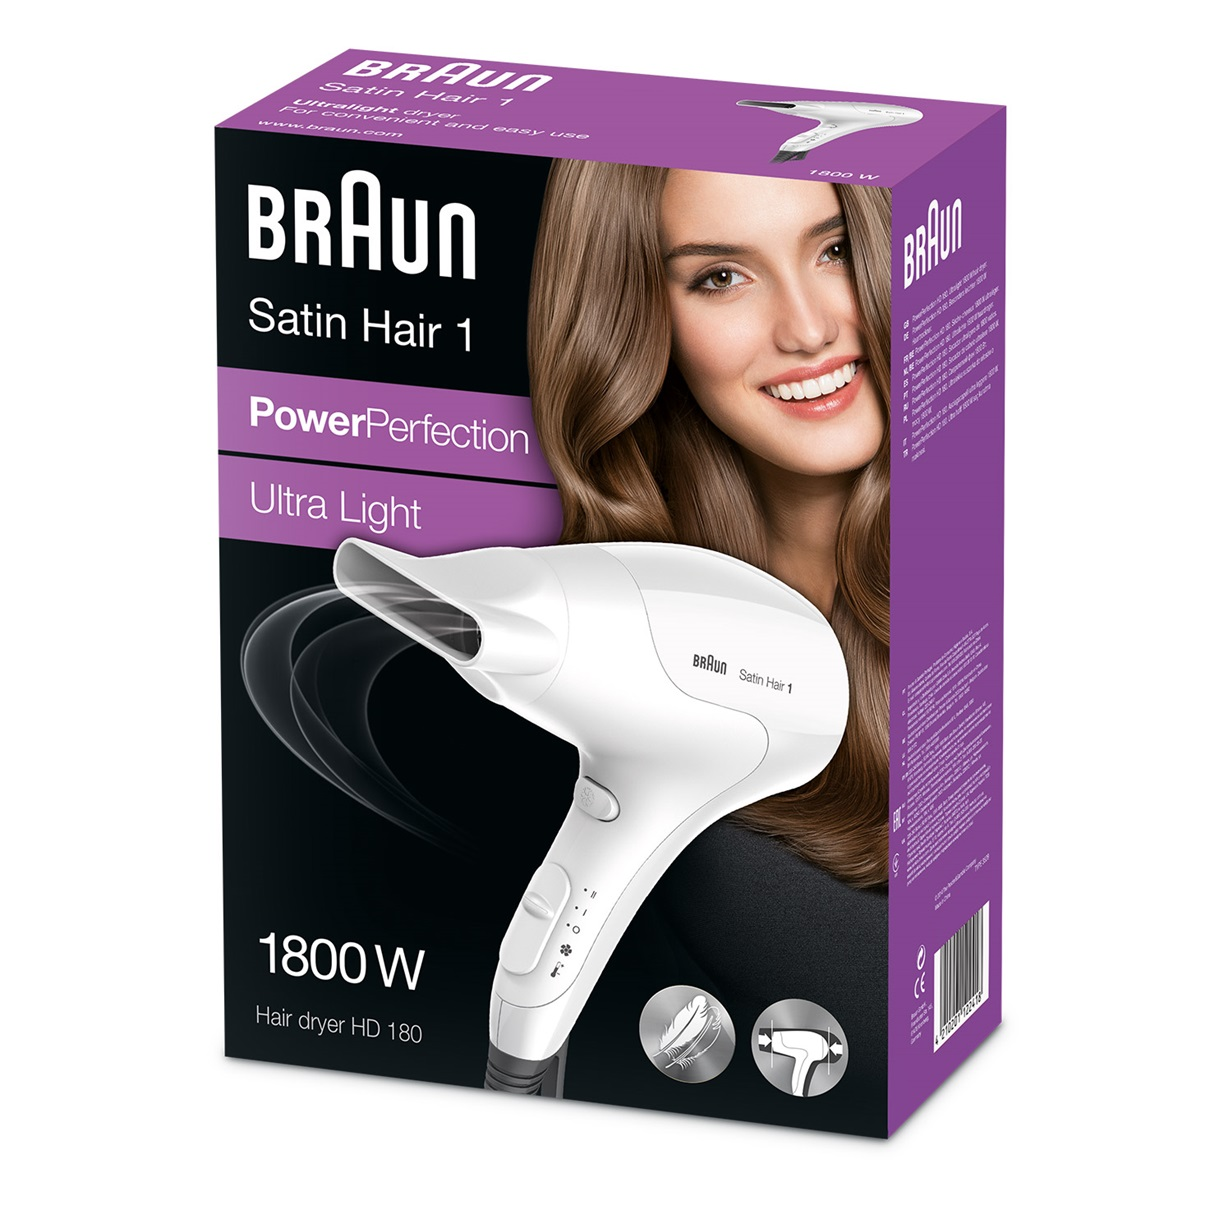 Satin Hair 1 PowerPerfection dryer HD180 packaging